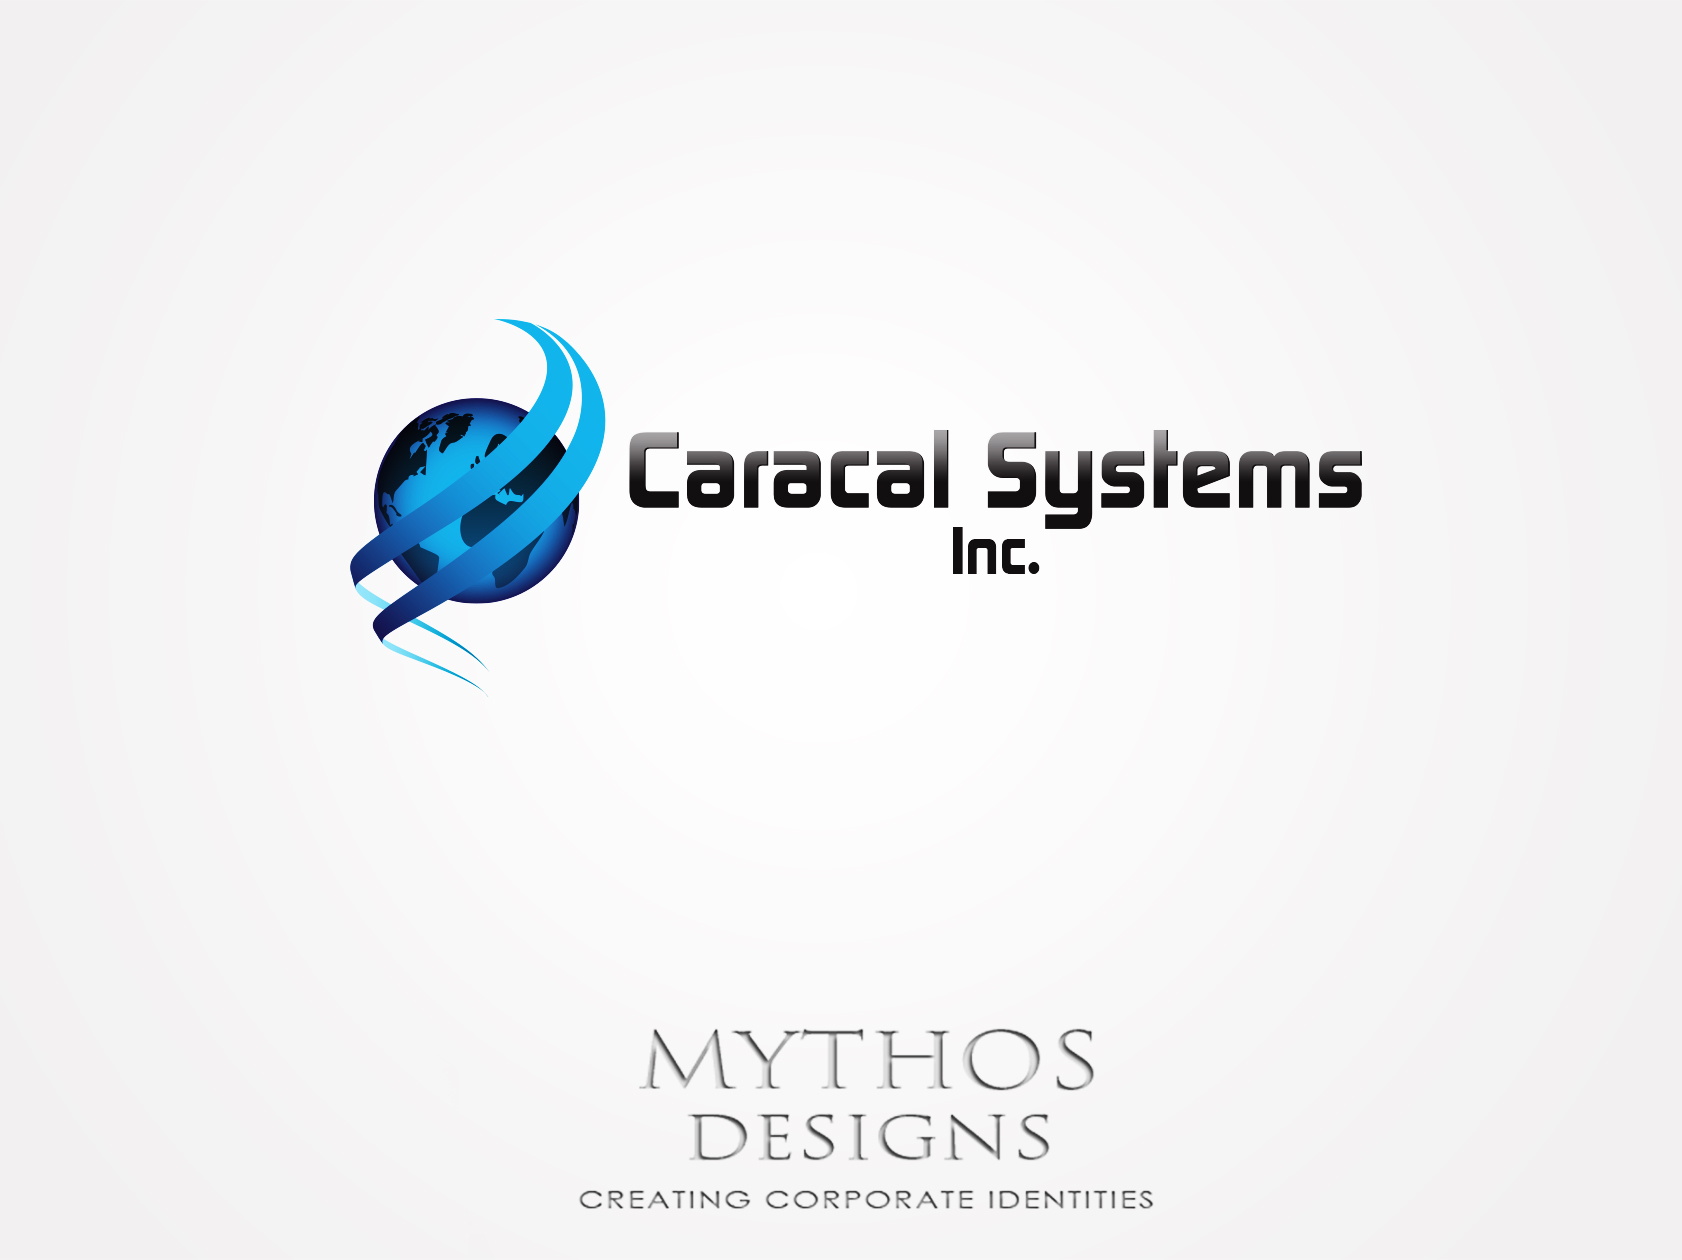 Logo Design by Mythos Designs - Entry No. 111 in the Logo Design Contest Inspiring Logo Design for Caracal Systems Inc..